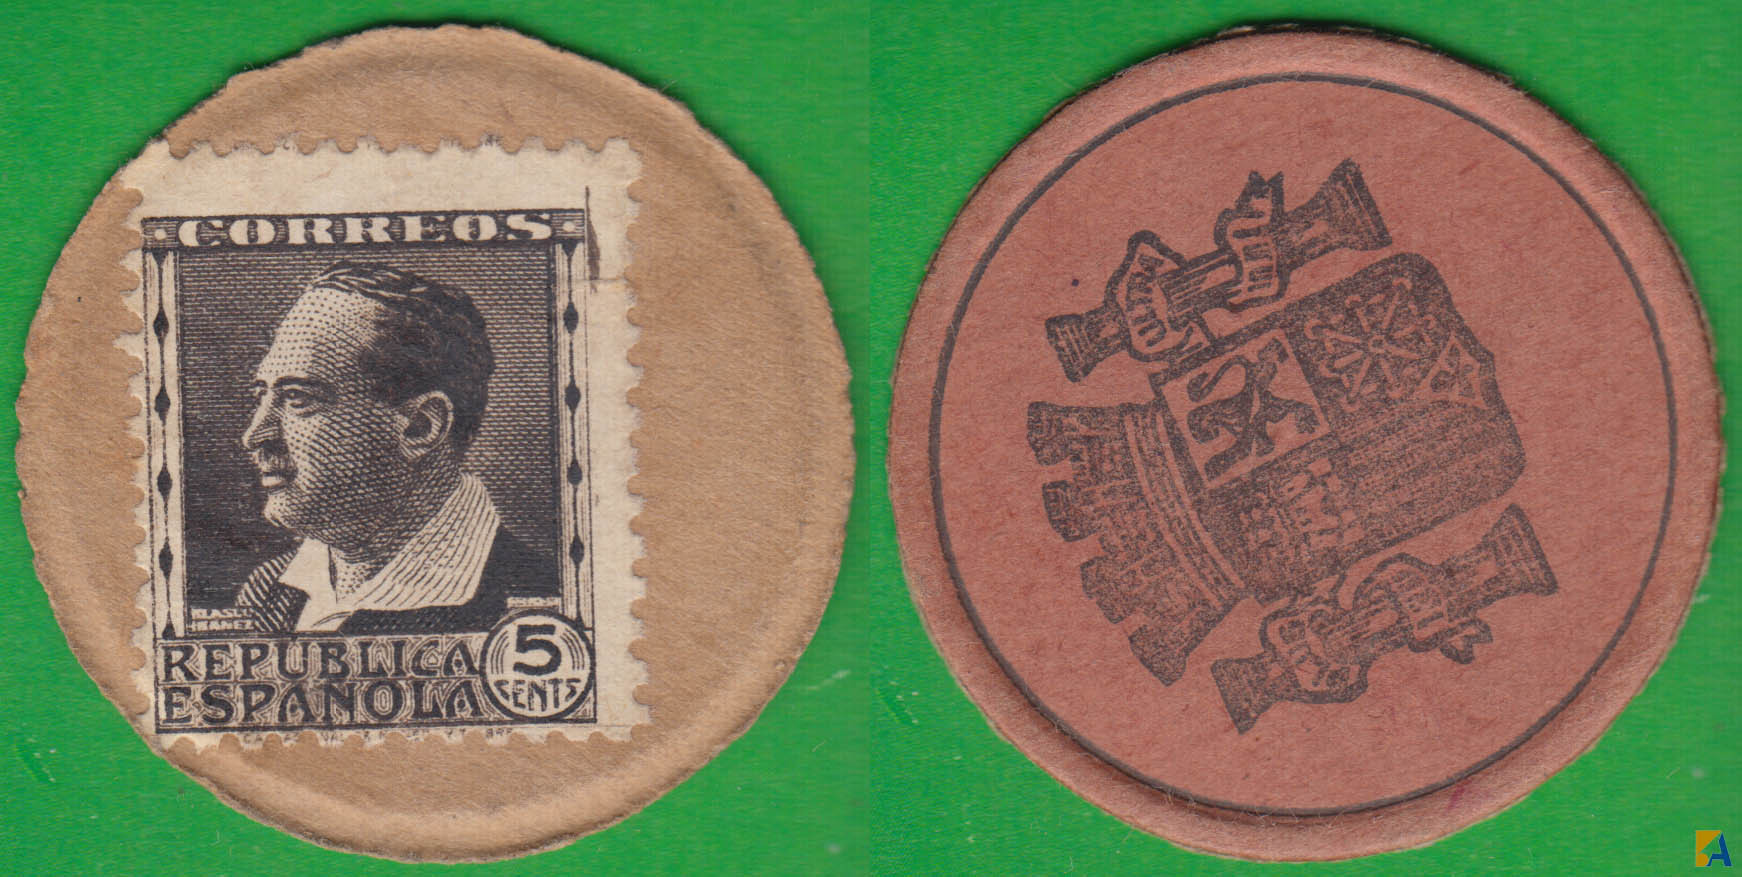 II REPUBLICA. MONEDA DE EMERGENCIA. 5 CENTIMOS DE 1938. BLASCO IBAÑEZ. MARRON OSCURO.